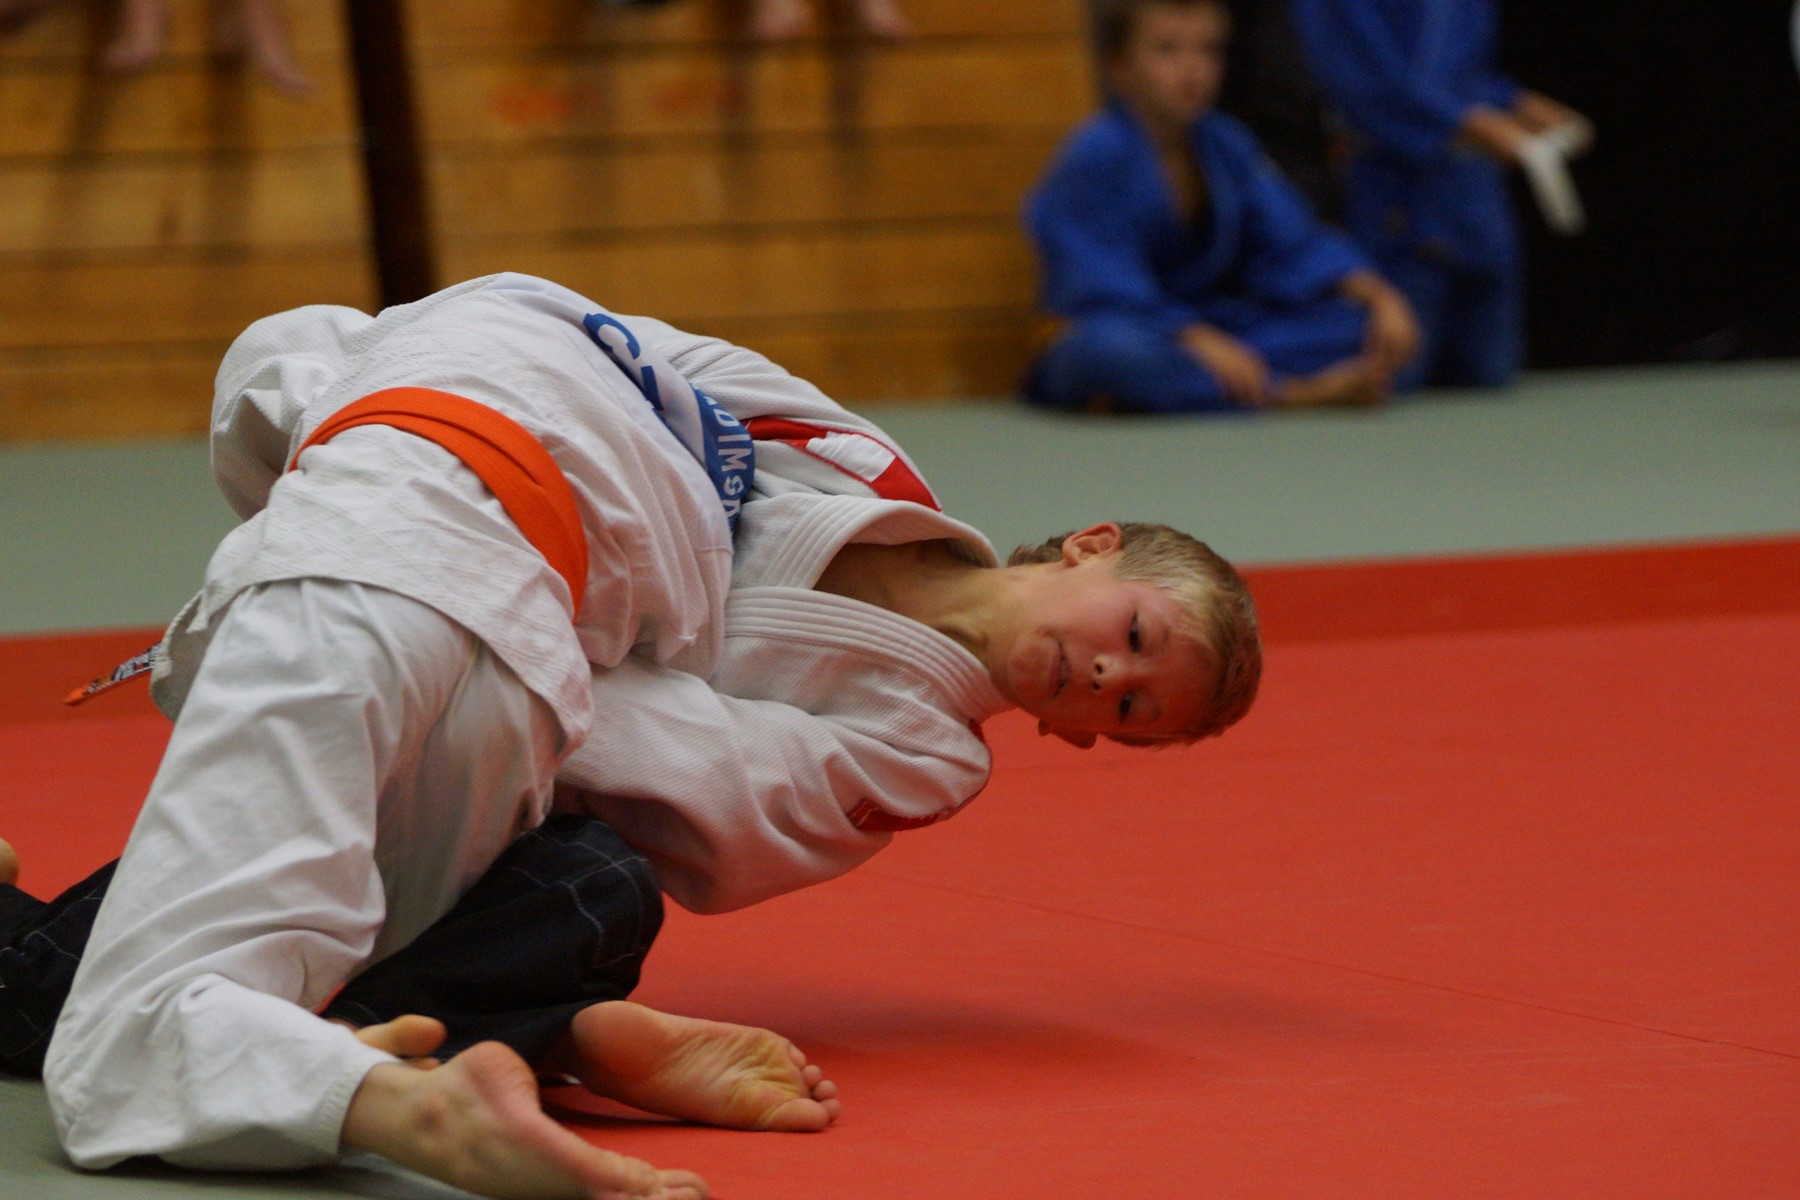 internationales Colop Masters in Wels